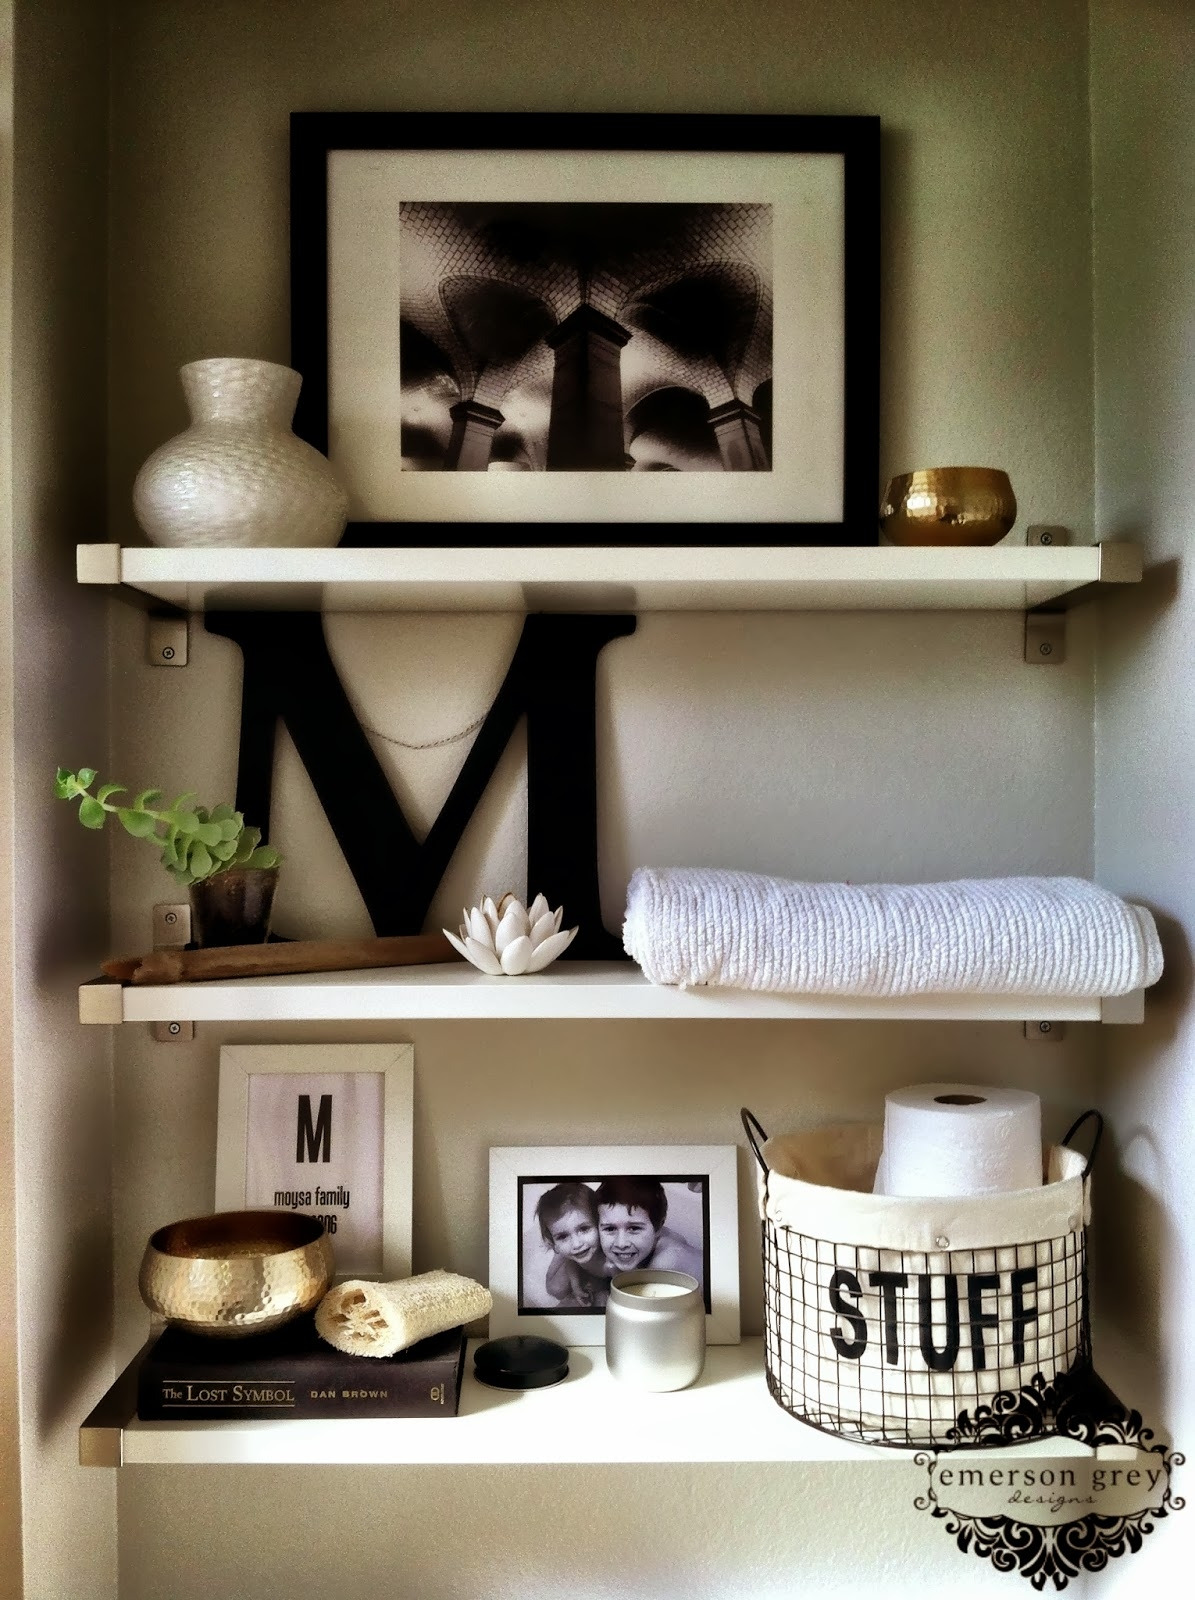 ways decorate bathroom shelvesbathrooms should be creatively decorated towels functionally